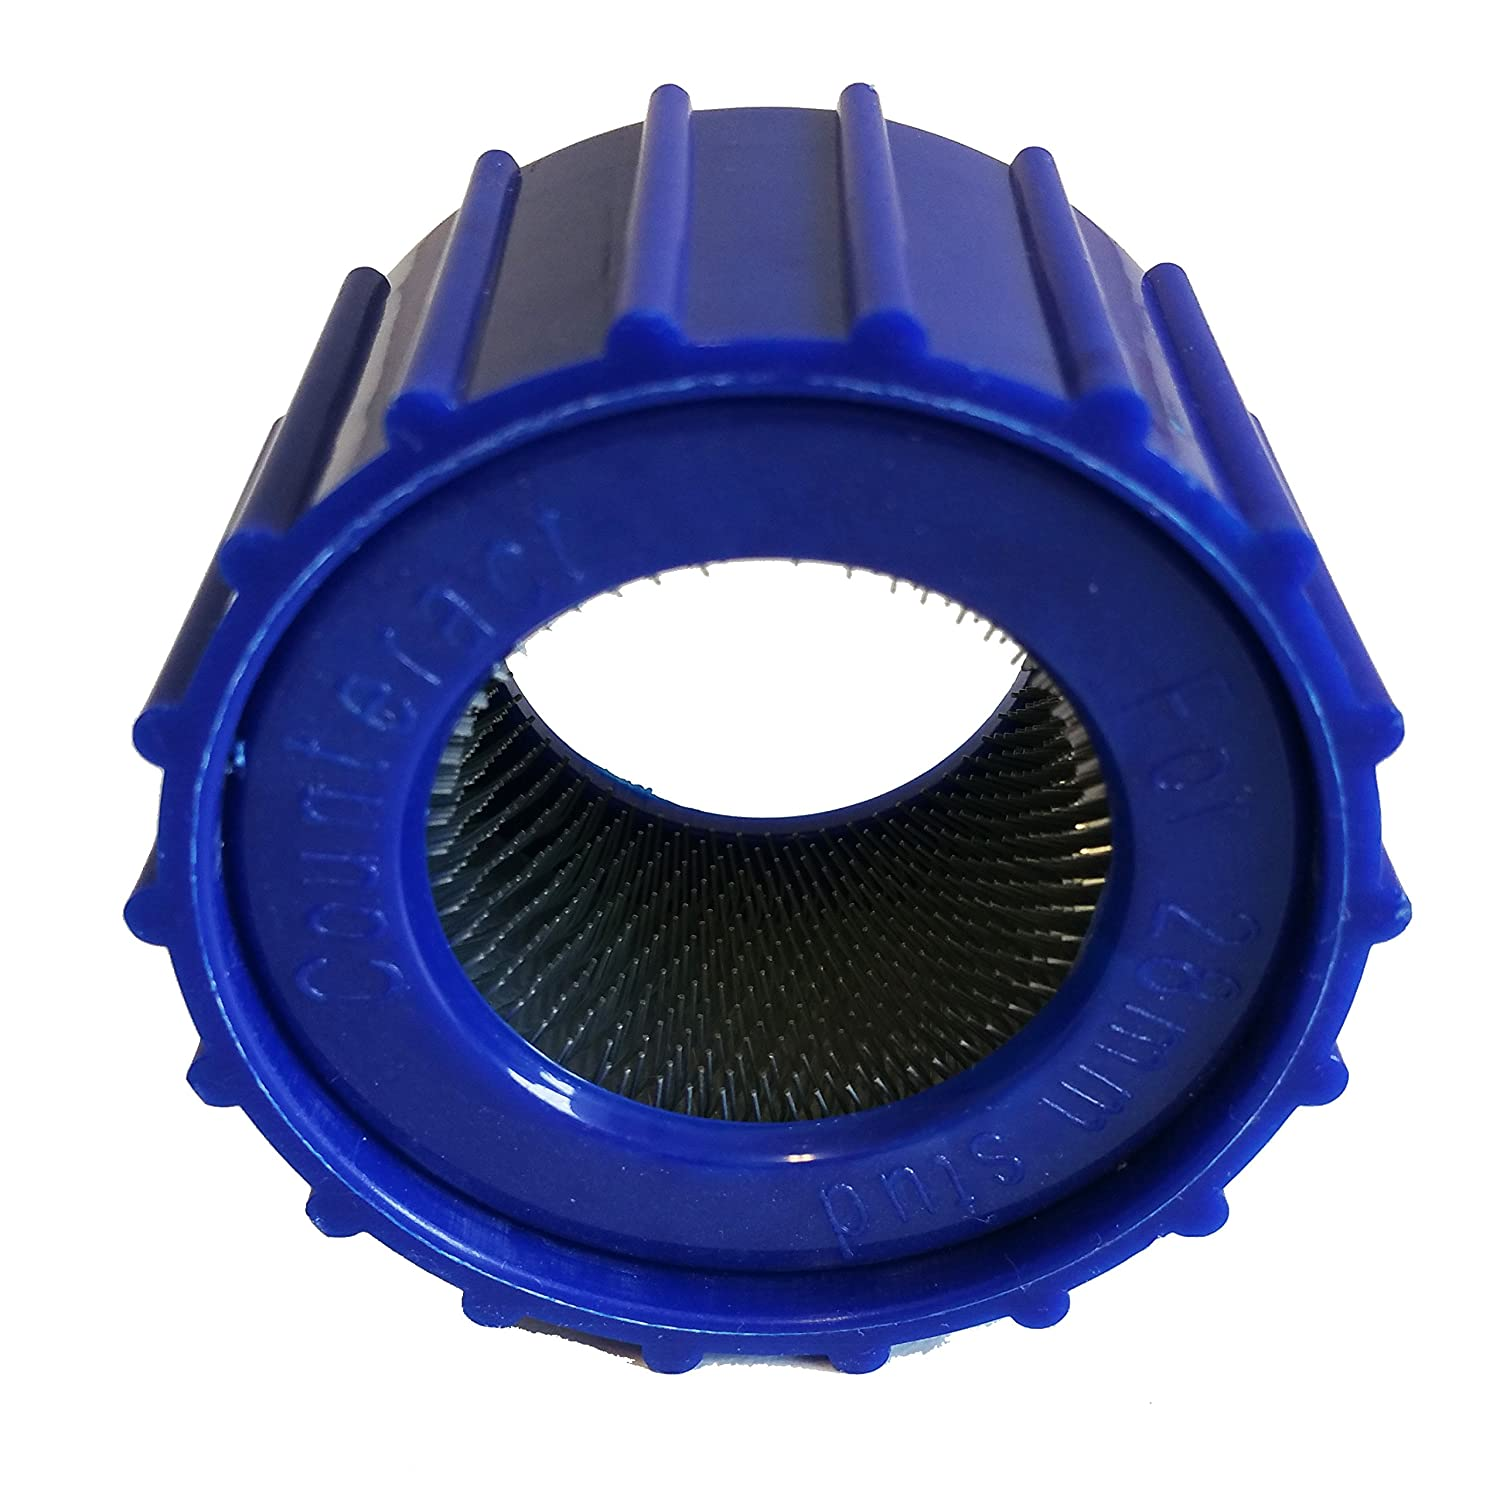 Fits replacement brush SBR28 28mm 28mm Commercial Budd Wheels SBCT28 Counteract Stud Cleaning Tool